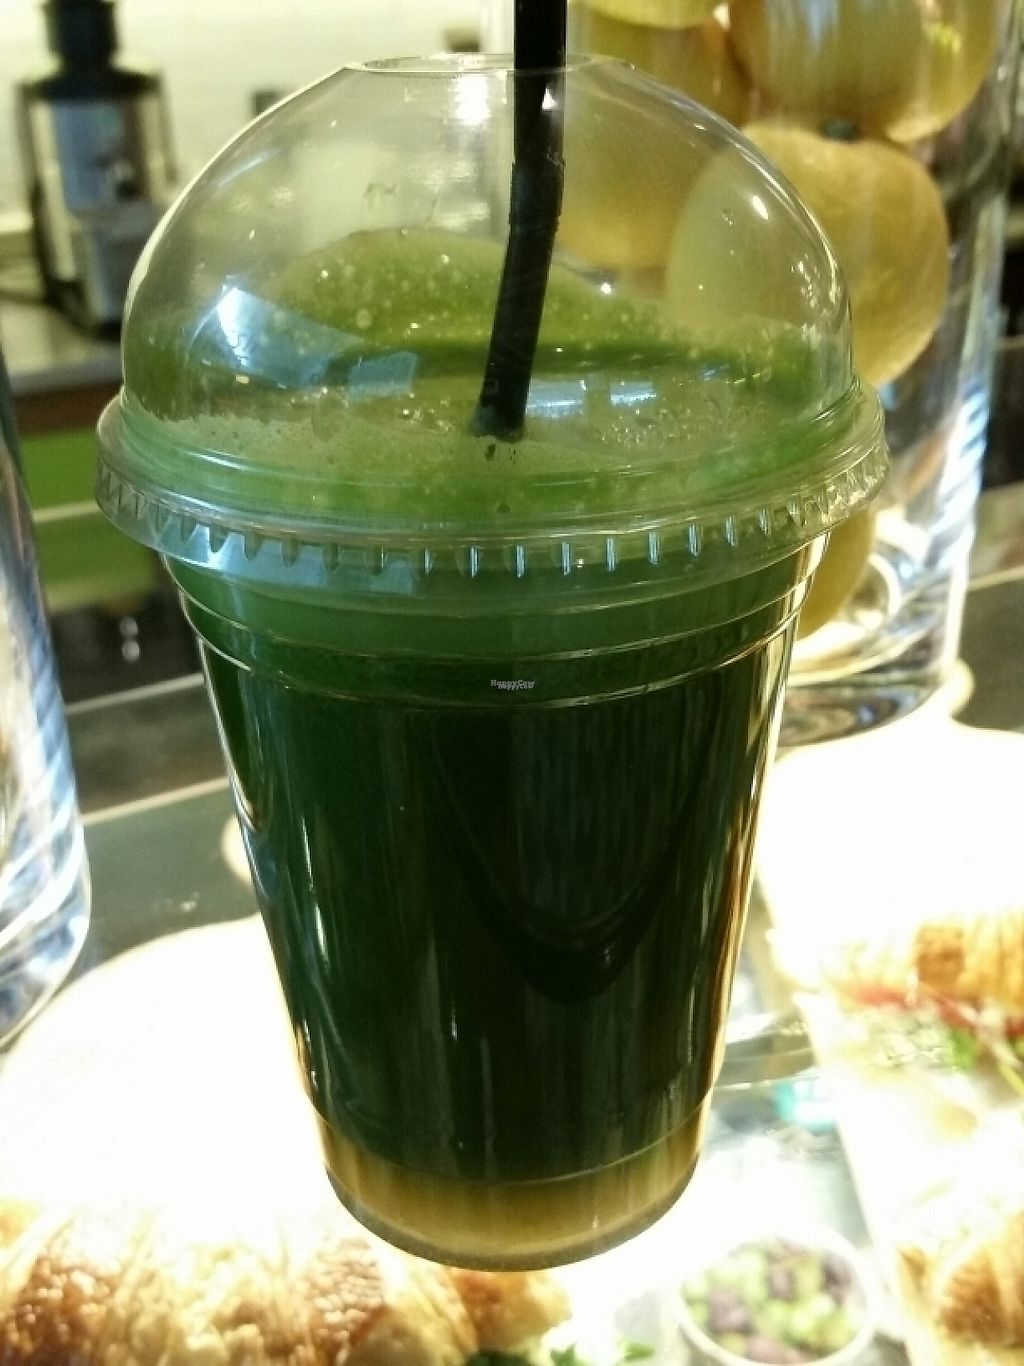 """Photo of WonderTree  by <a href=""""/members/profile/eric"""">eric</a> <br/>canyon greens Apple kale celery lemon ginger <br/> April 10, 2017  - <a href='/contact/abuse/image/89433/246672'>Report</a>"""